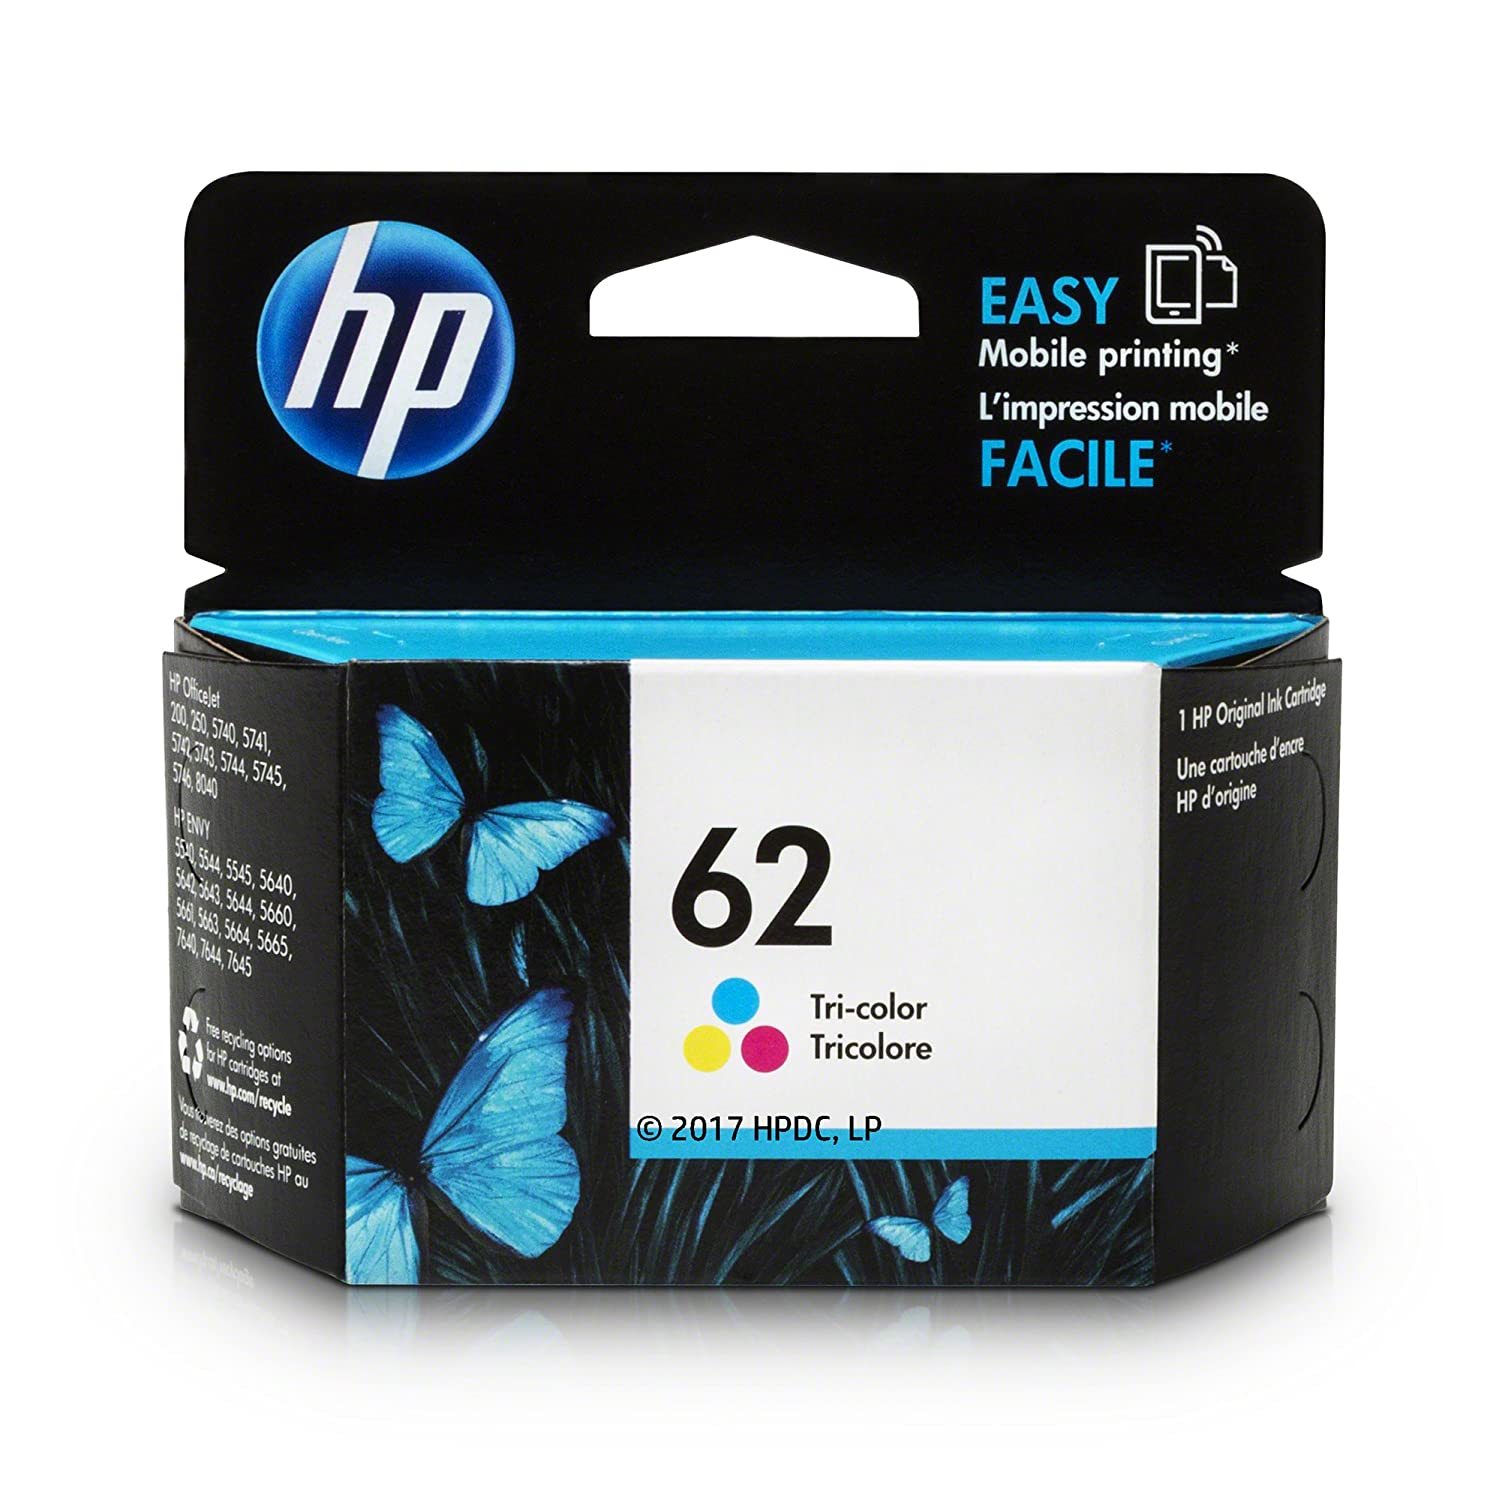 HP 62XL Black High Yield Original Ink Cartridge For HP ENVY 5540, 5643, 5542, 5544, 5545, 5640, 5642, 5660, 5665, 7640, 7645, 8000, HP Officejet 5740, 5741, 5742, 5743, 5744, 5745, 5746, 8040 Hewlett Packard C2P05AN#140